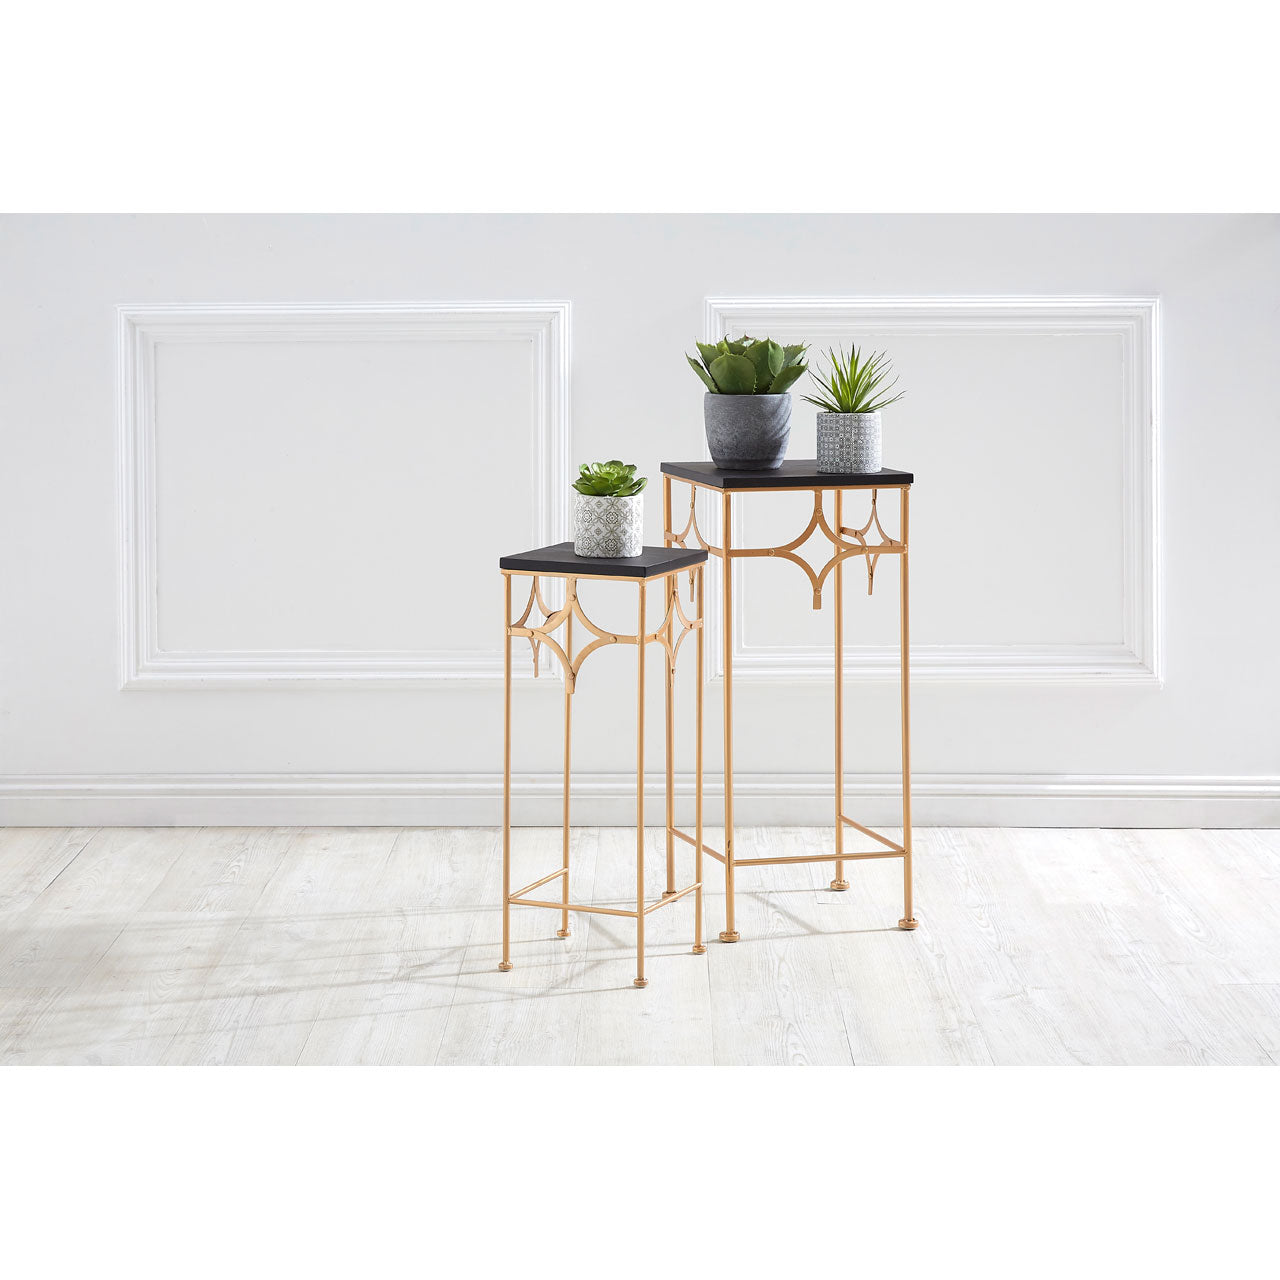 Lexa Plant Stands